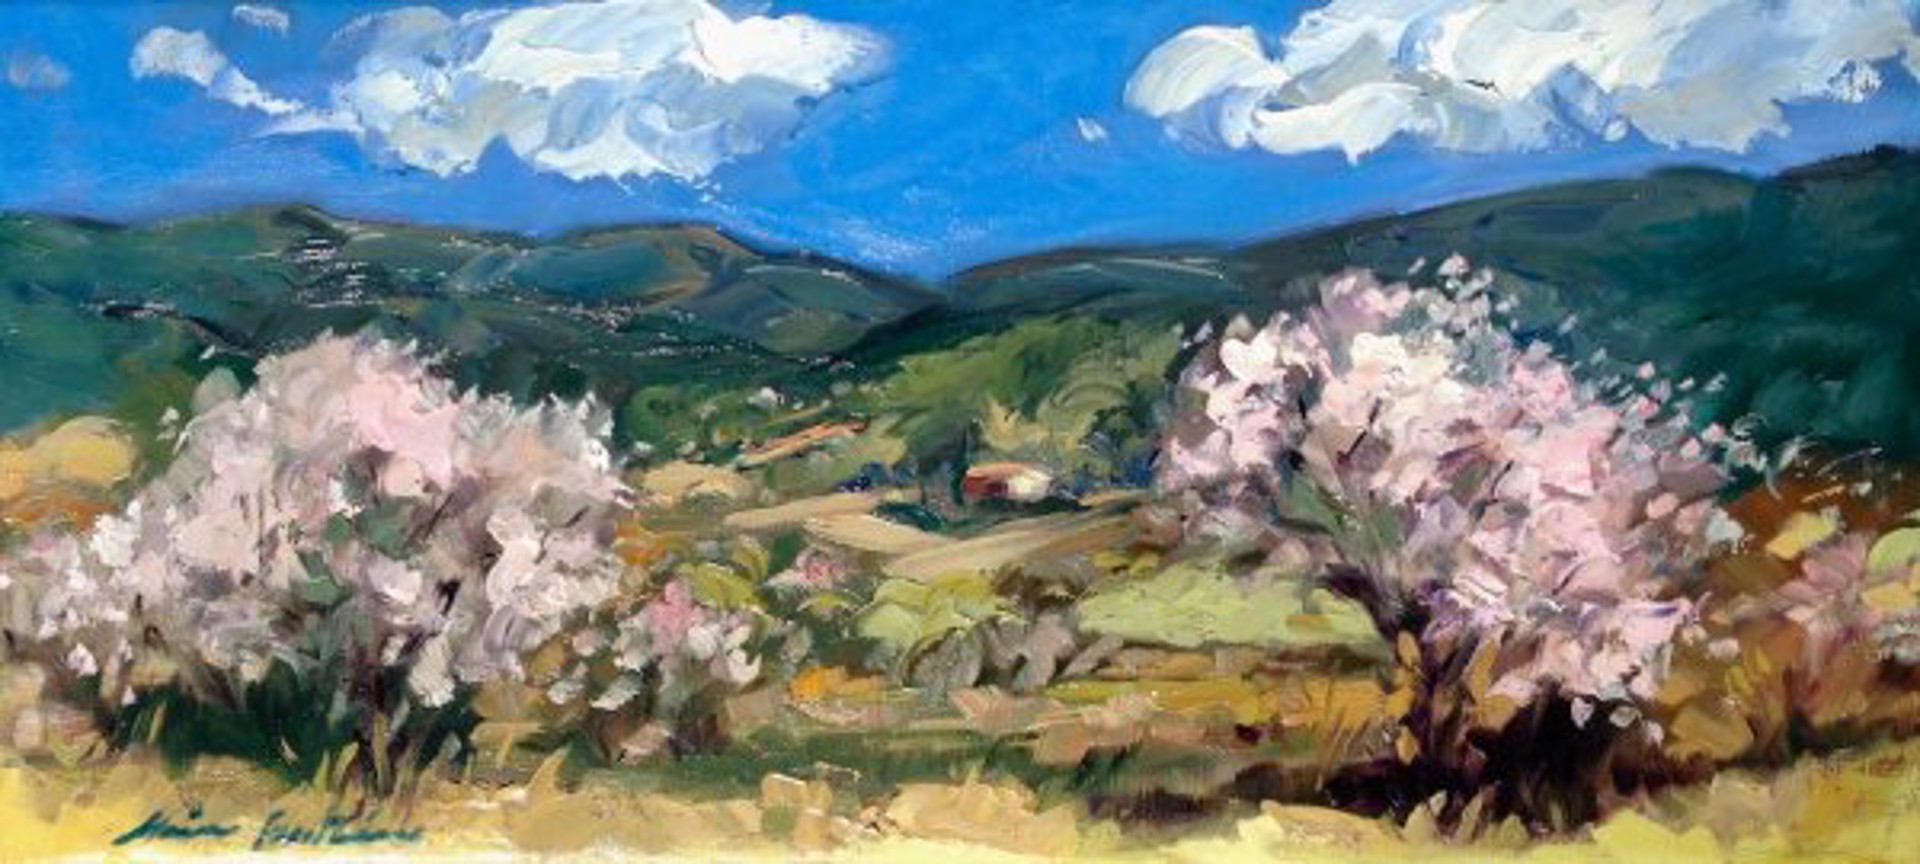 Apricot Trees In Bloom by Maria Bertrán